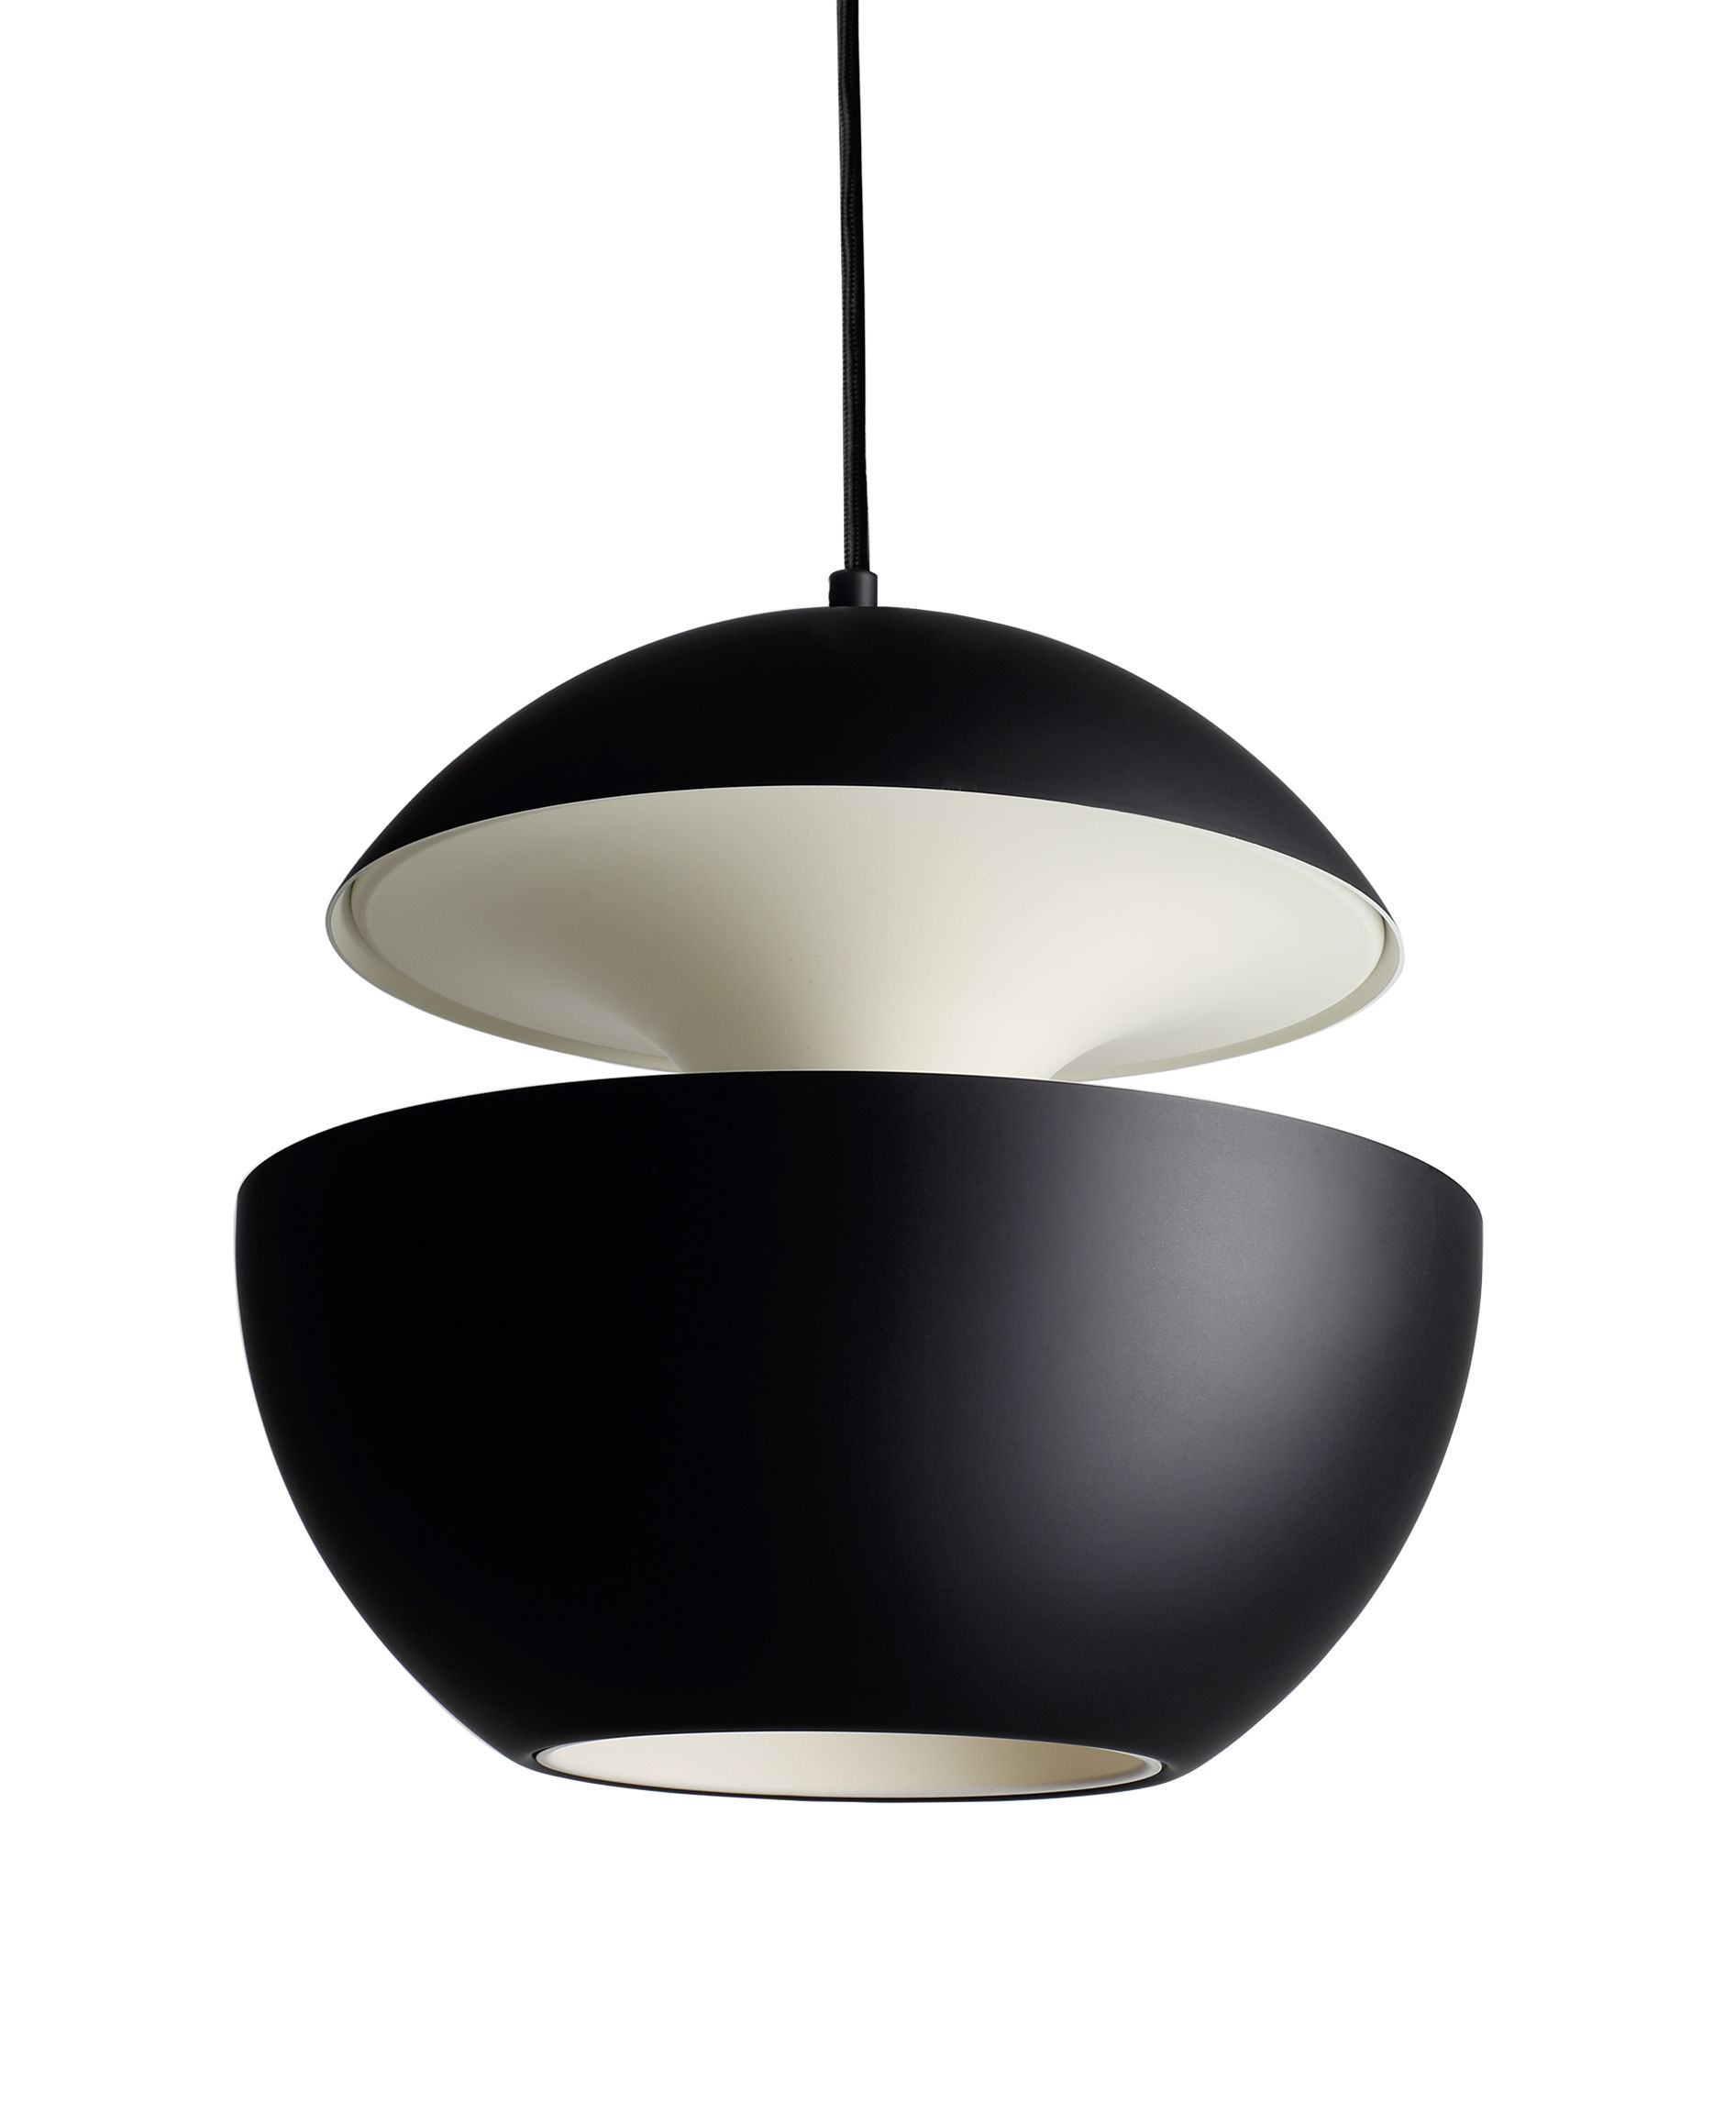 suspension luminaire 1970. Black Bedroom Furniture Sets. Home Design Ideas